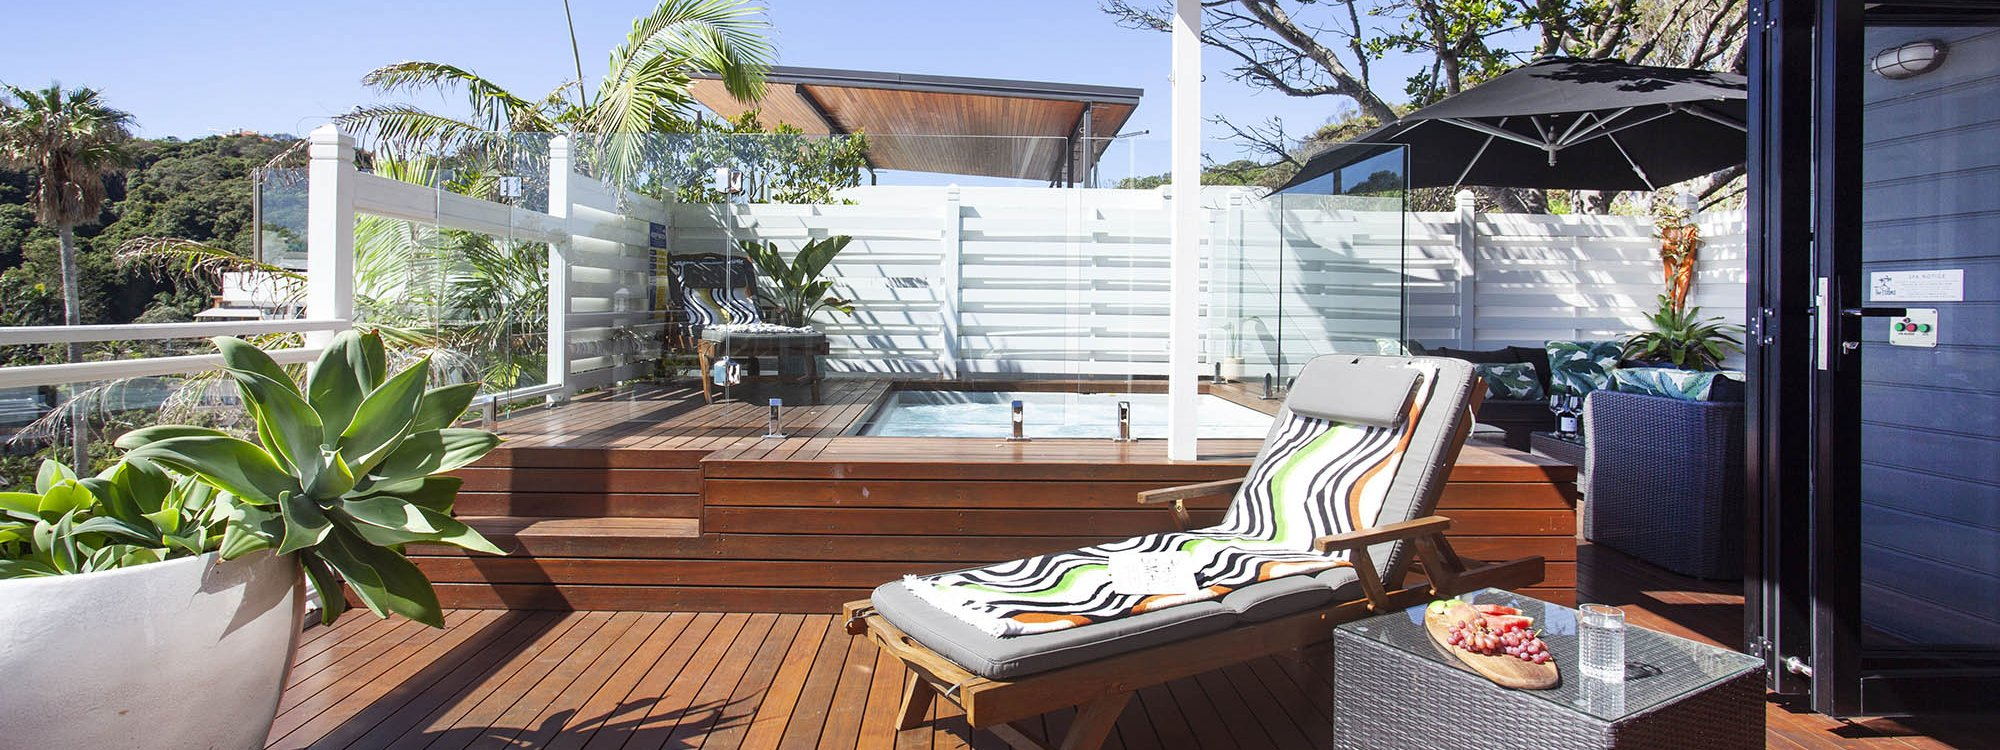 The Palms at Byron - Byron Bay - Main floor deck and pool